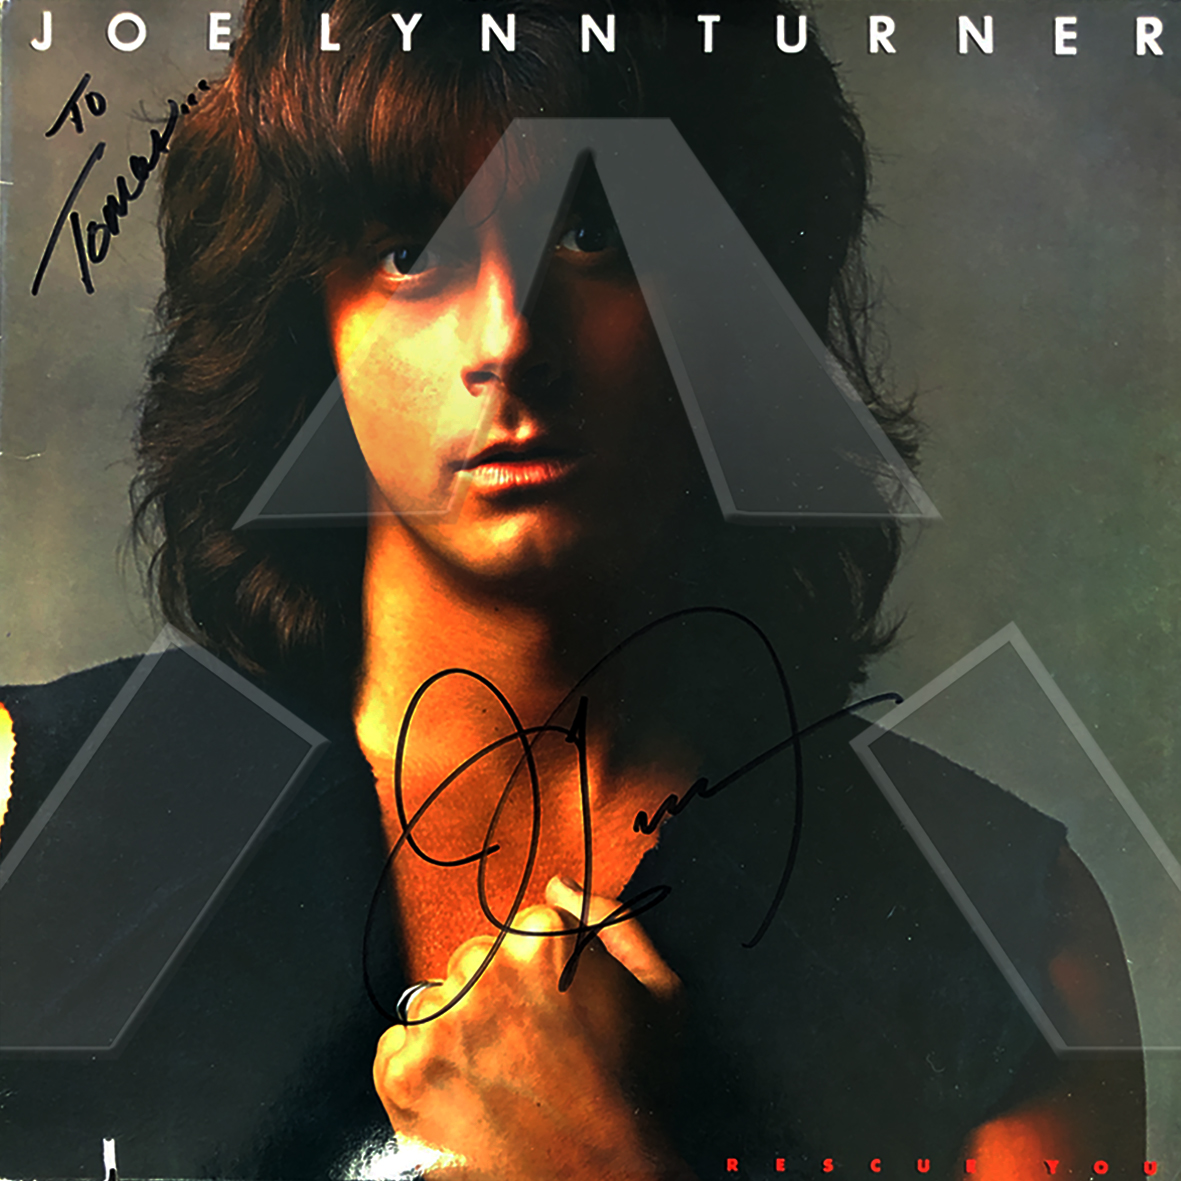 Joe Lynn Turner ★ Rescue You (vinyl album EU ST12521 signed)